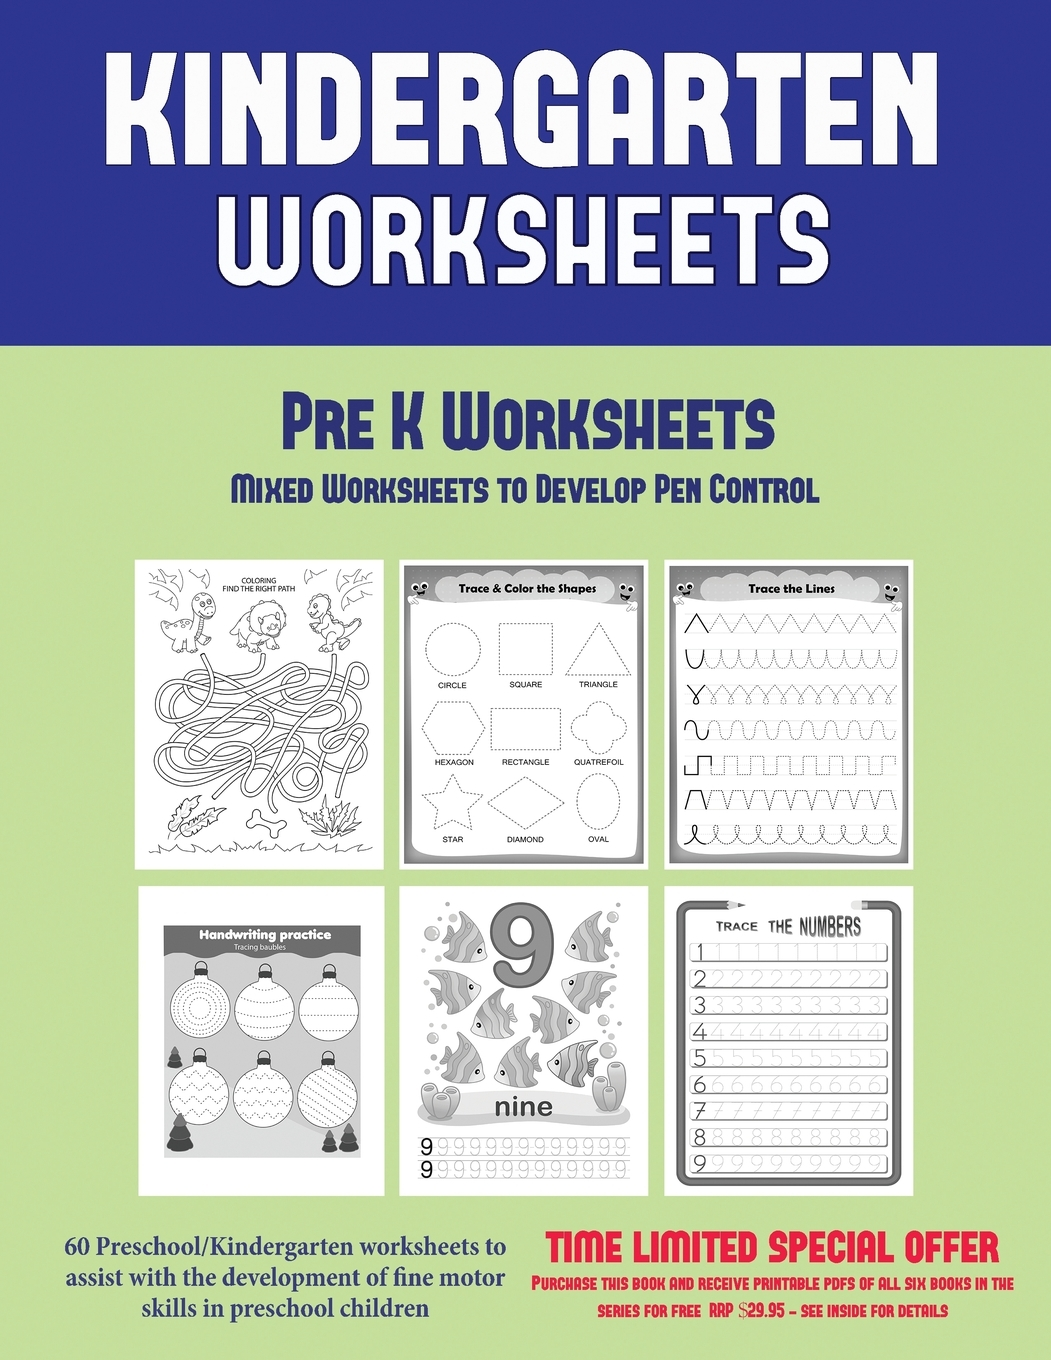 Pre K Worksheets Pre K Worksheets Mixed Worksheets To